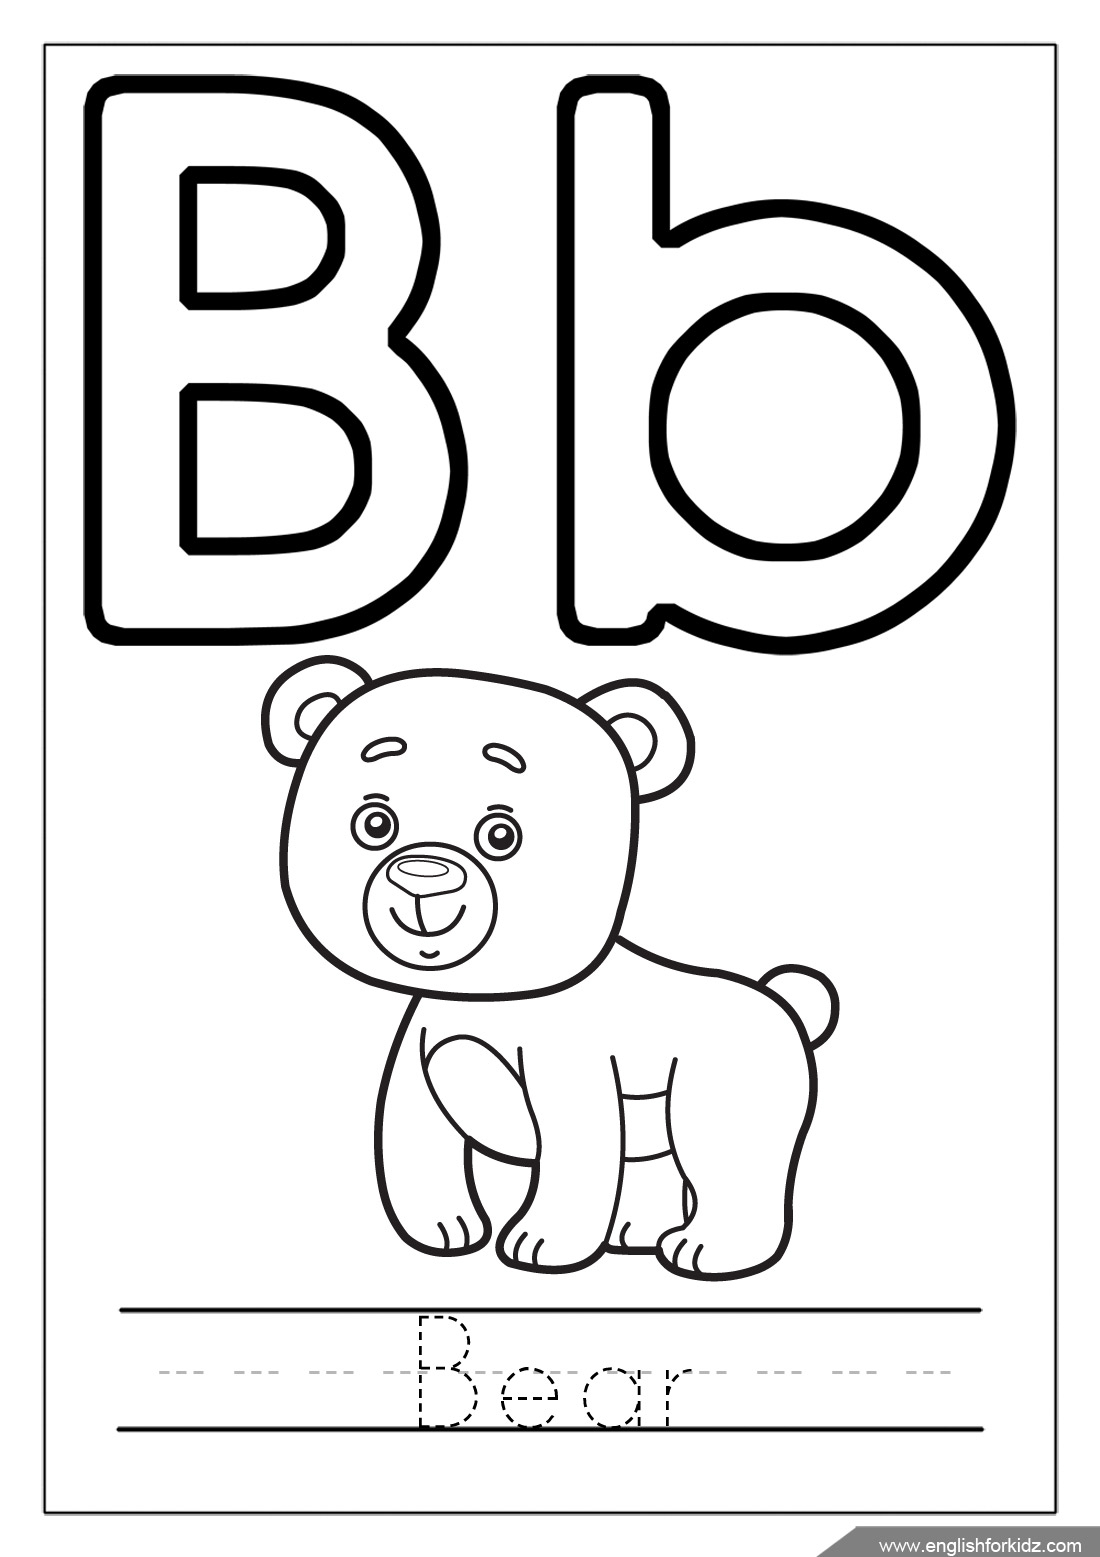 B Coloring Page Letter B Worksheets Flash Cards Coloring Pages